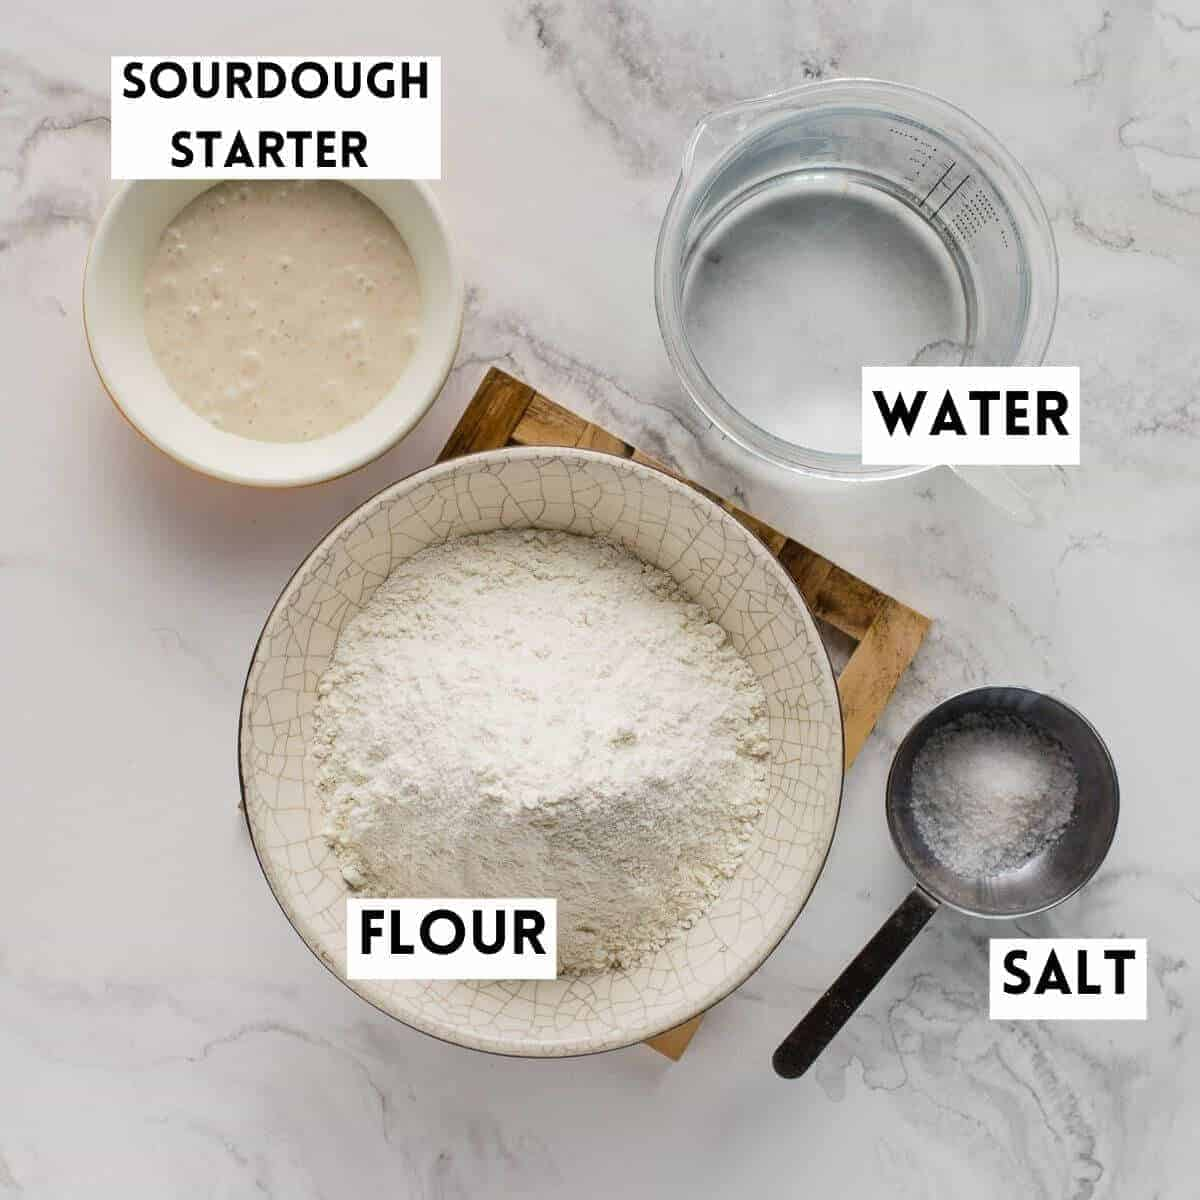 flour, water, salt and sourdough starter in separate bowls